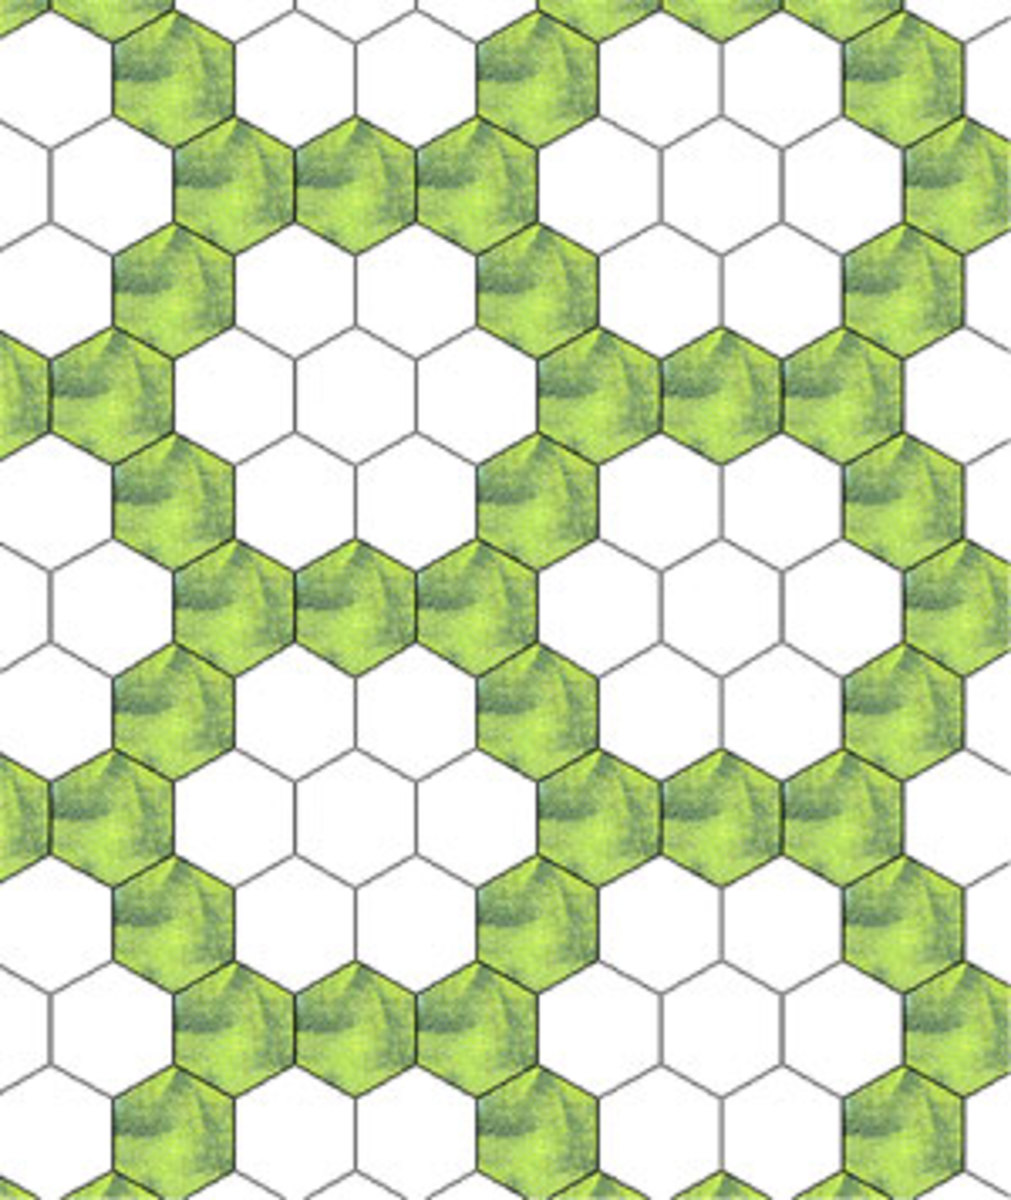 Patchwork Quilt Designs: Hexagons | Feltmagnet